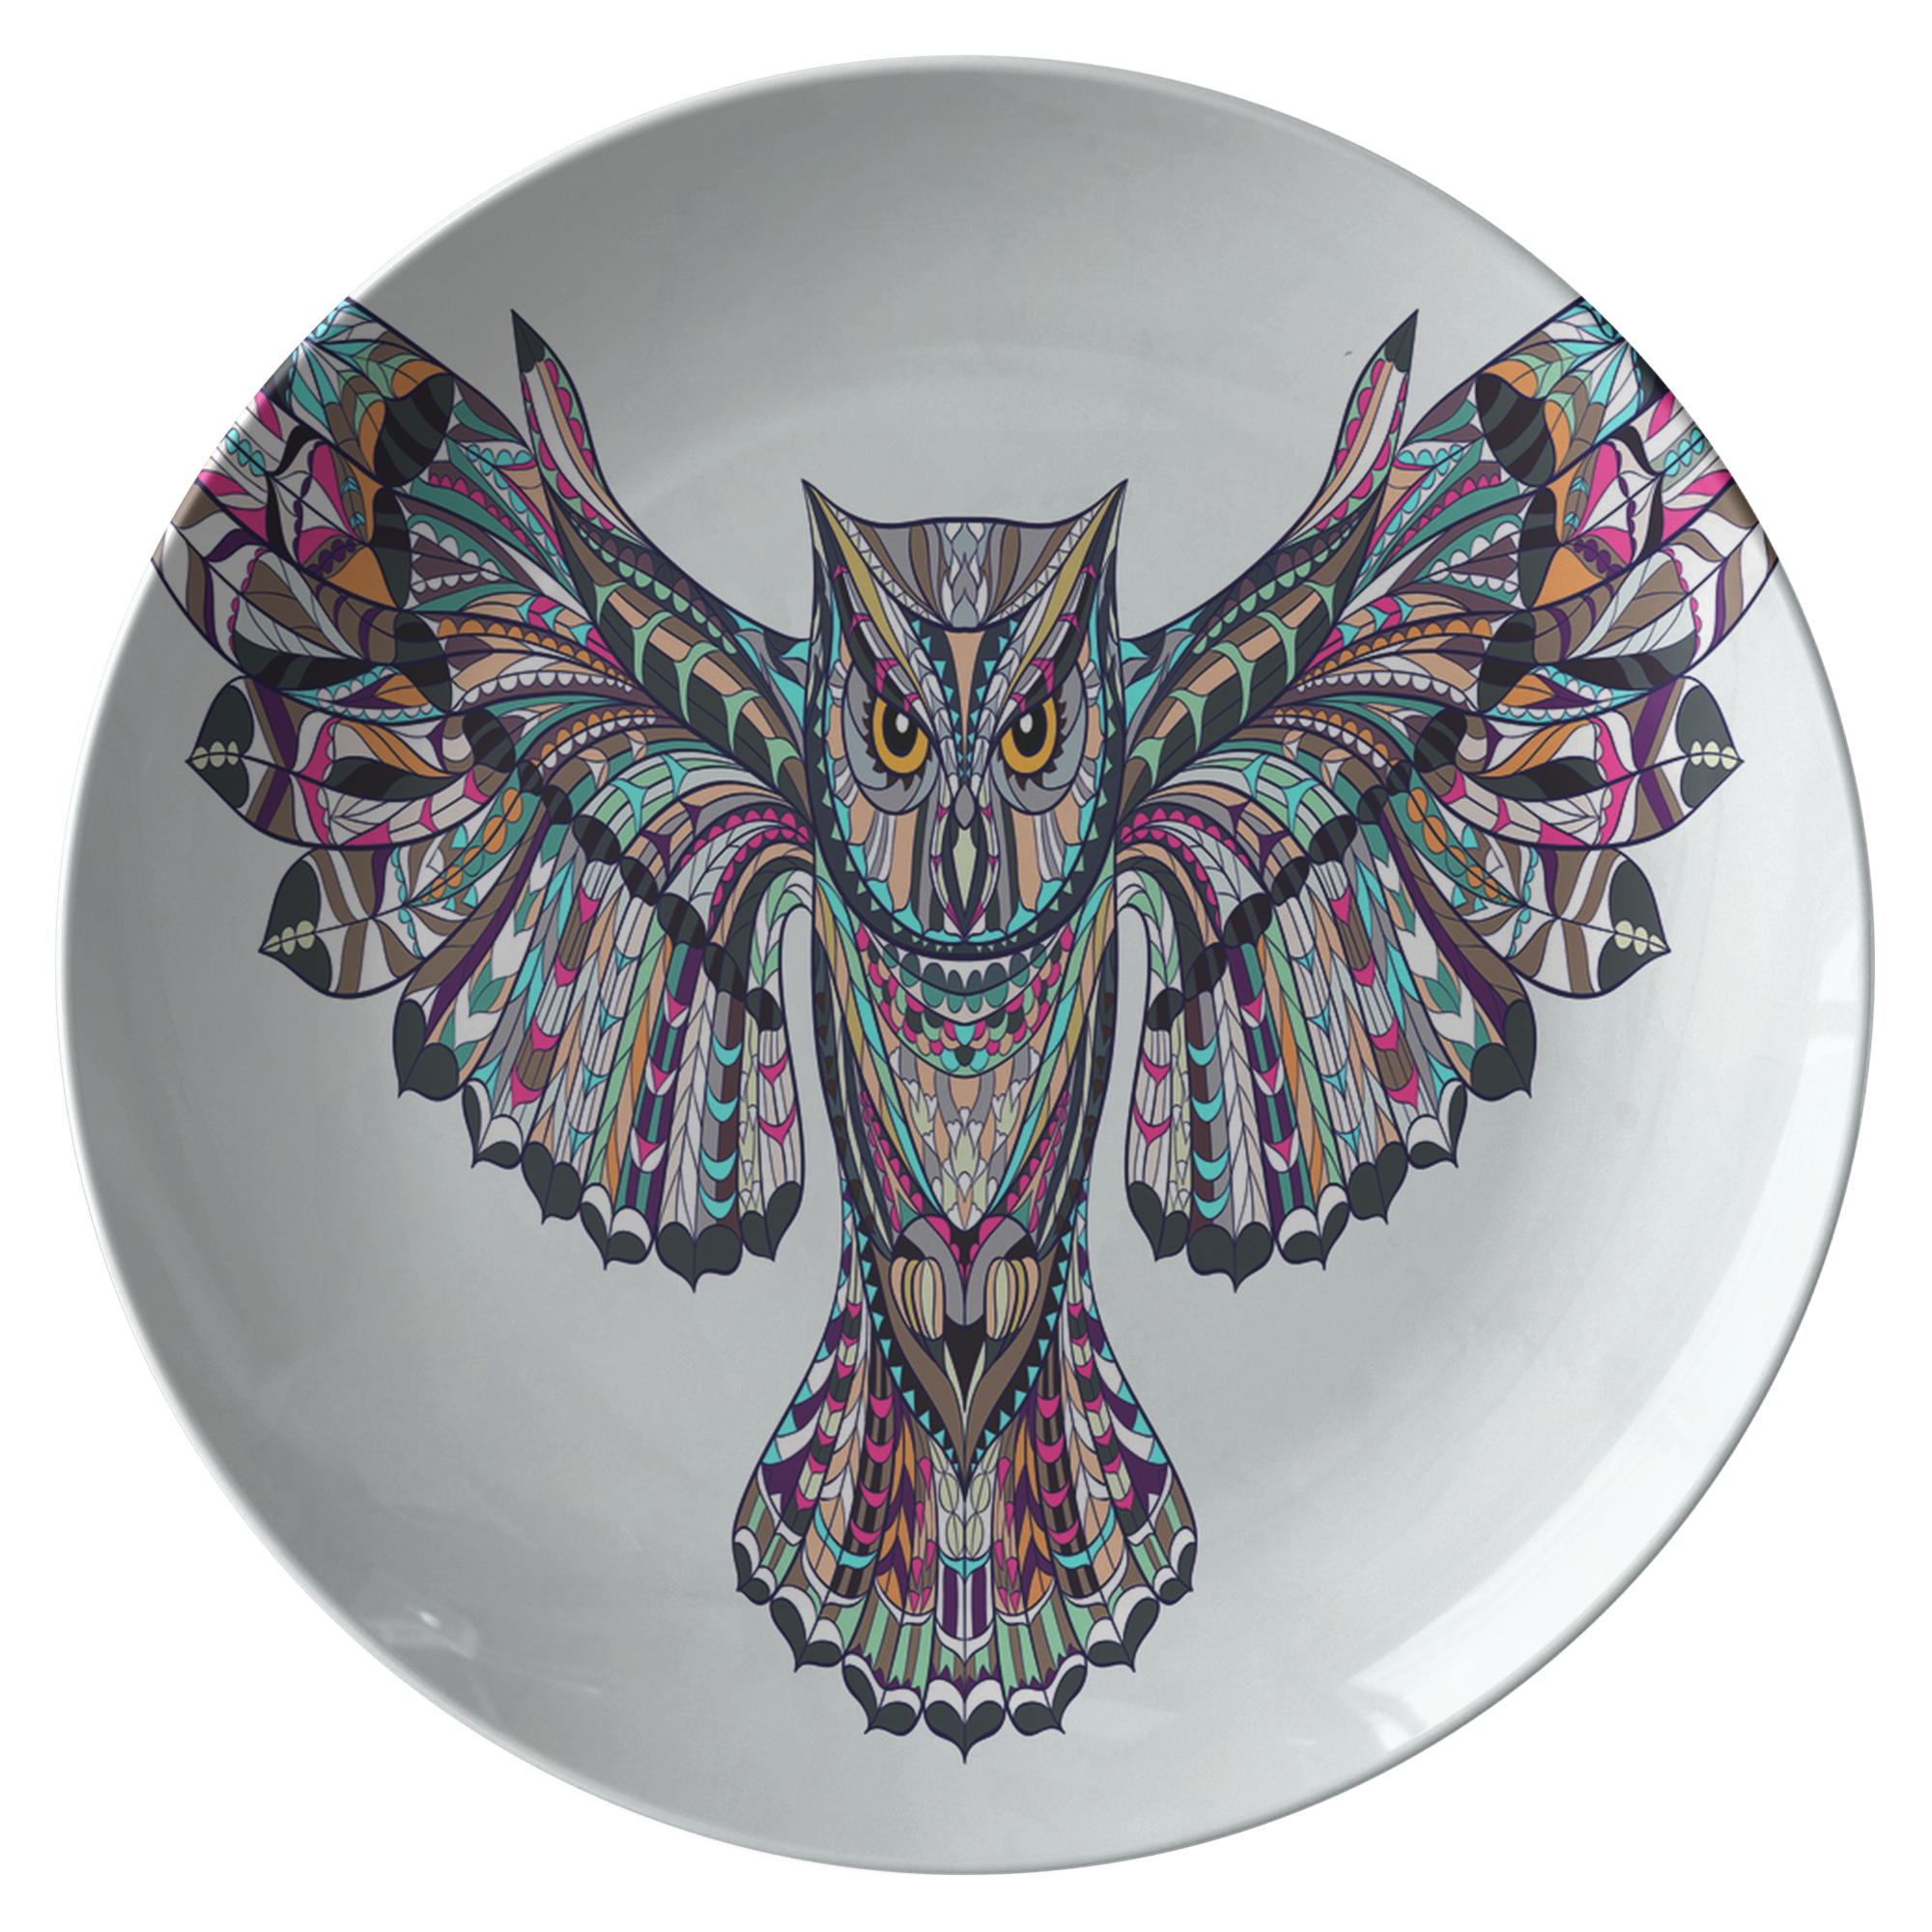 Fierce Owl Limited Edition Plate